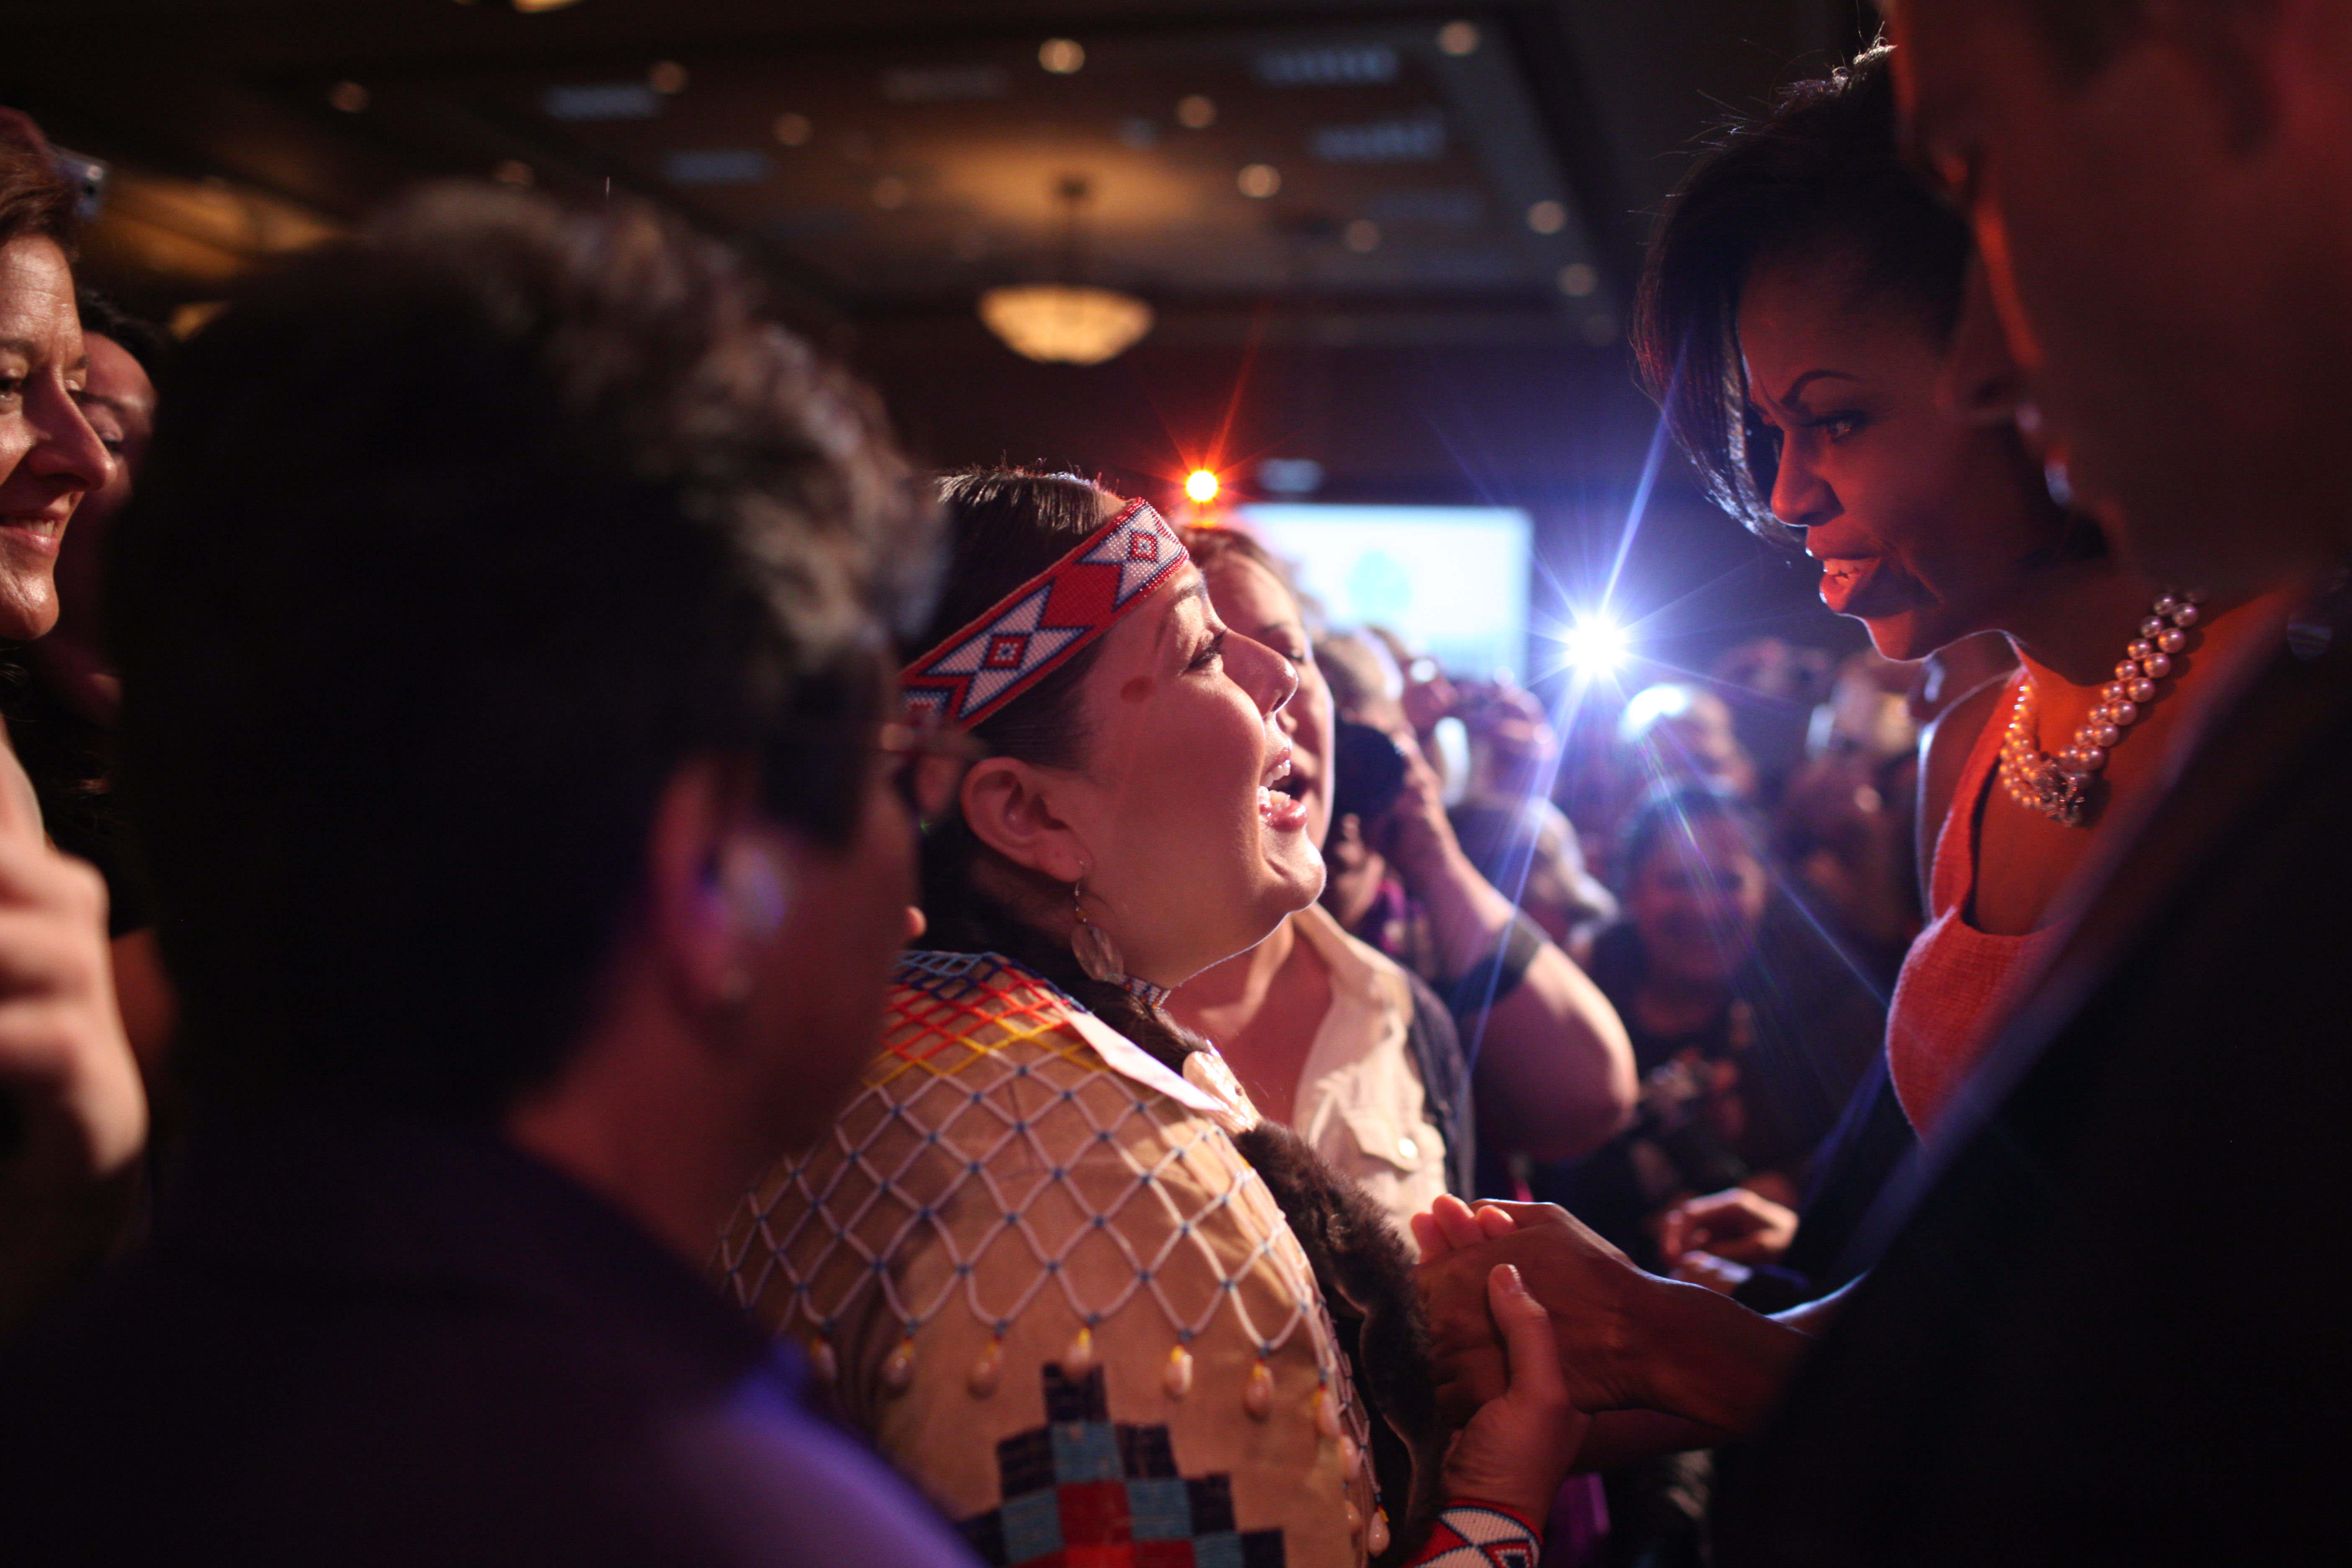 First Lady Michelle Obama greets the crowd after making remarks at the Women's Summit